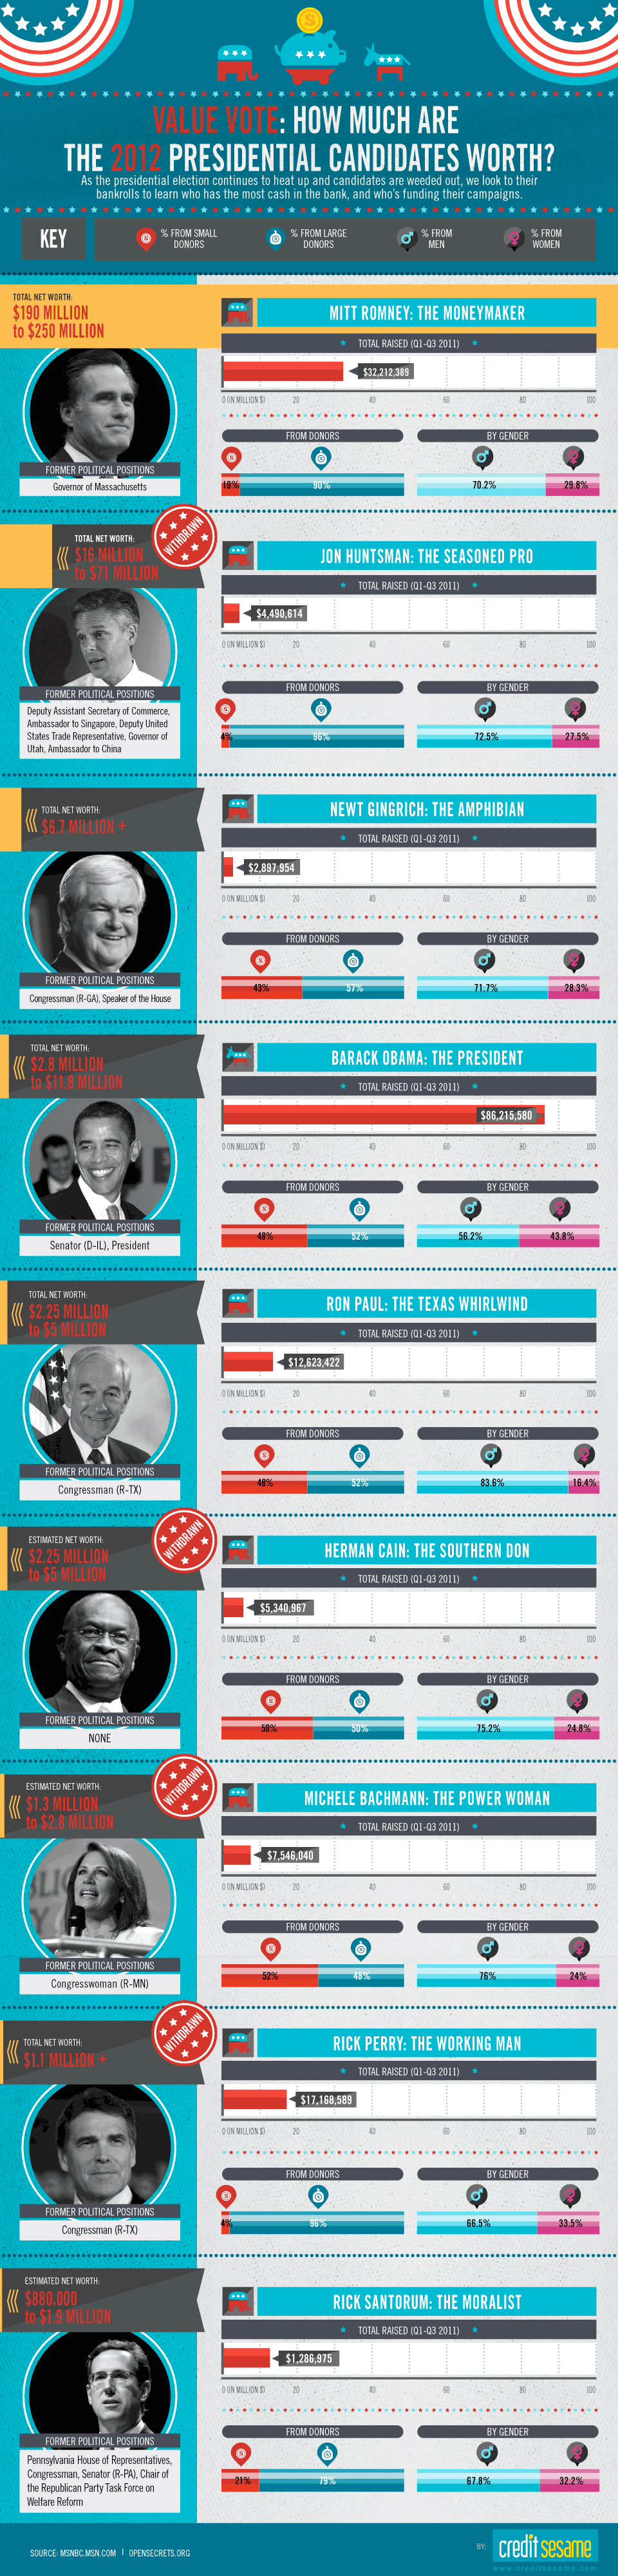 2012 Presidential Candidate Net Worth Infographic